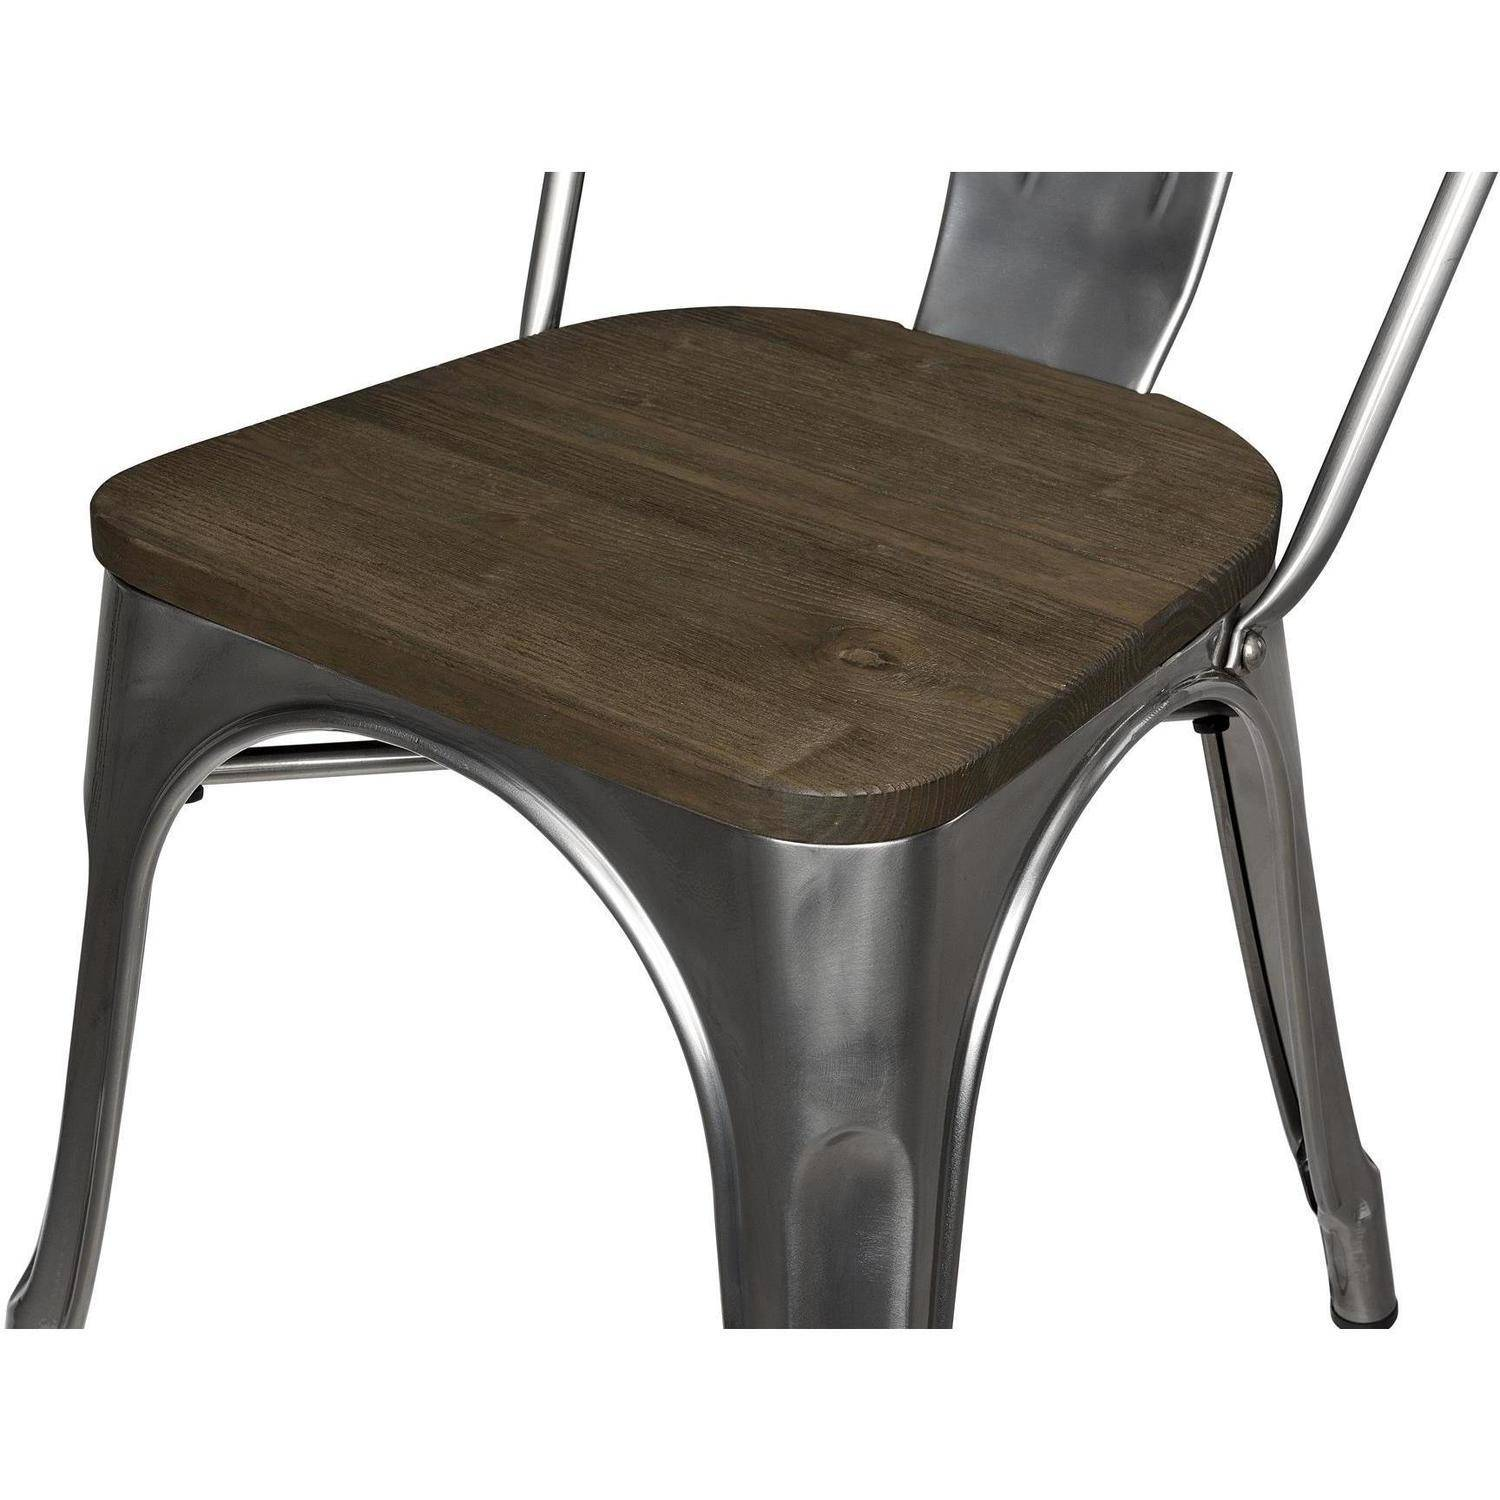 Dorel Home Products Fusion Metal Dining Chair with Wood Seat Set